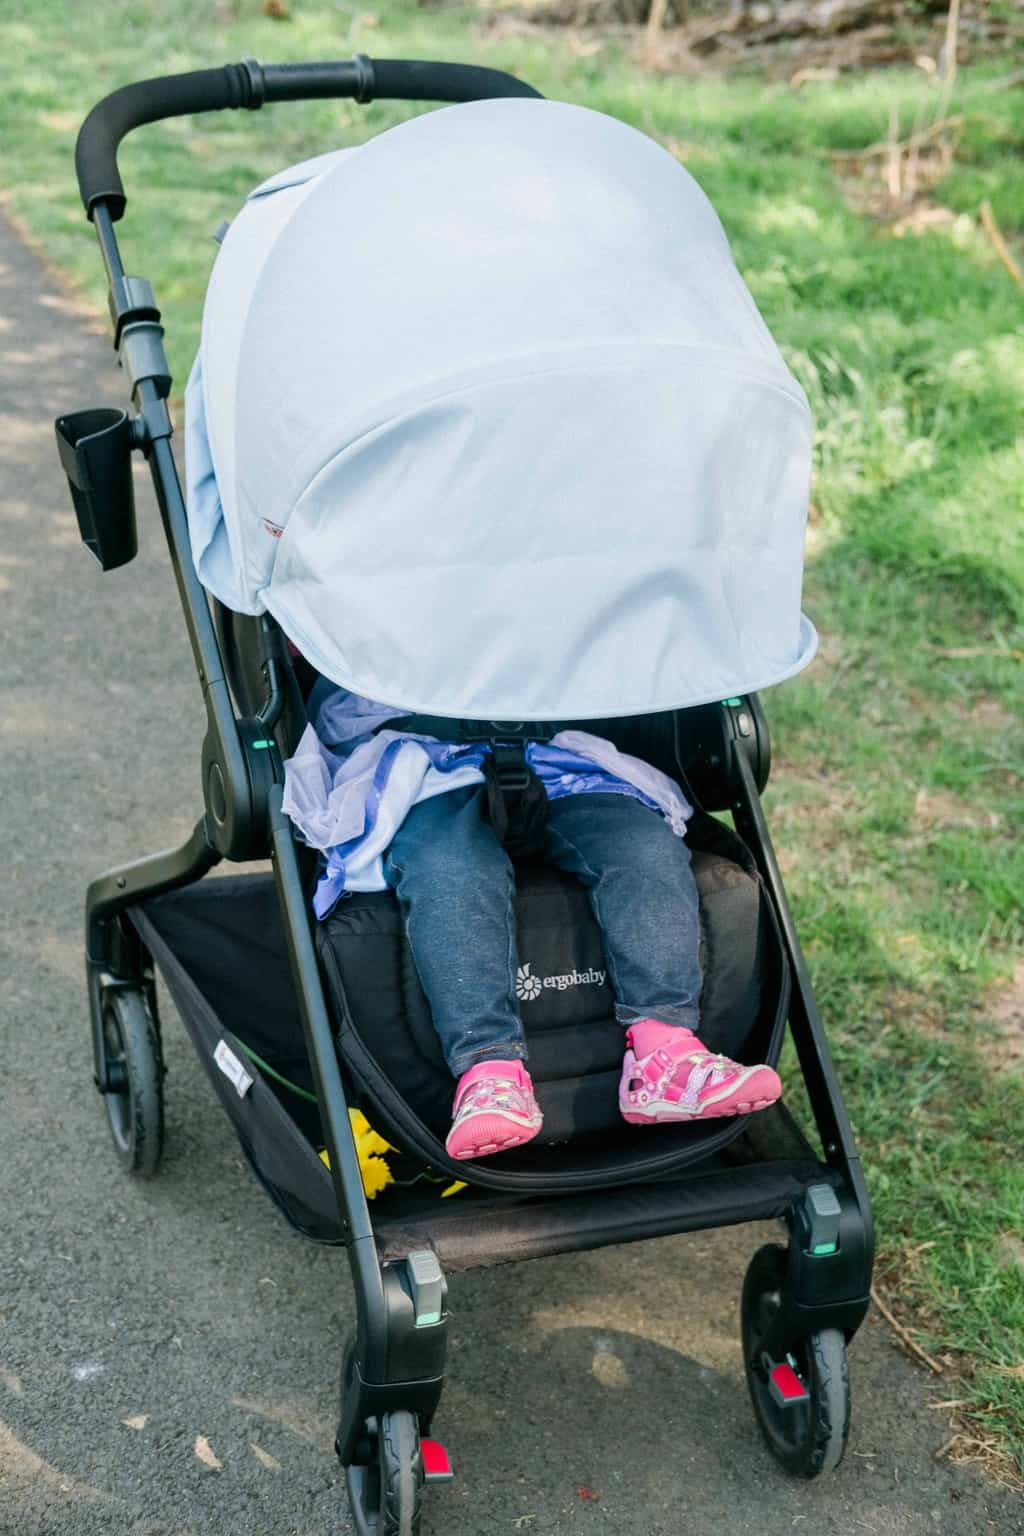 Ergobaby 180 Reversible Stroller Review - Breastfeeding Needs